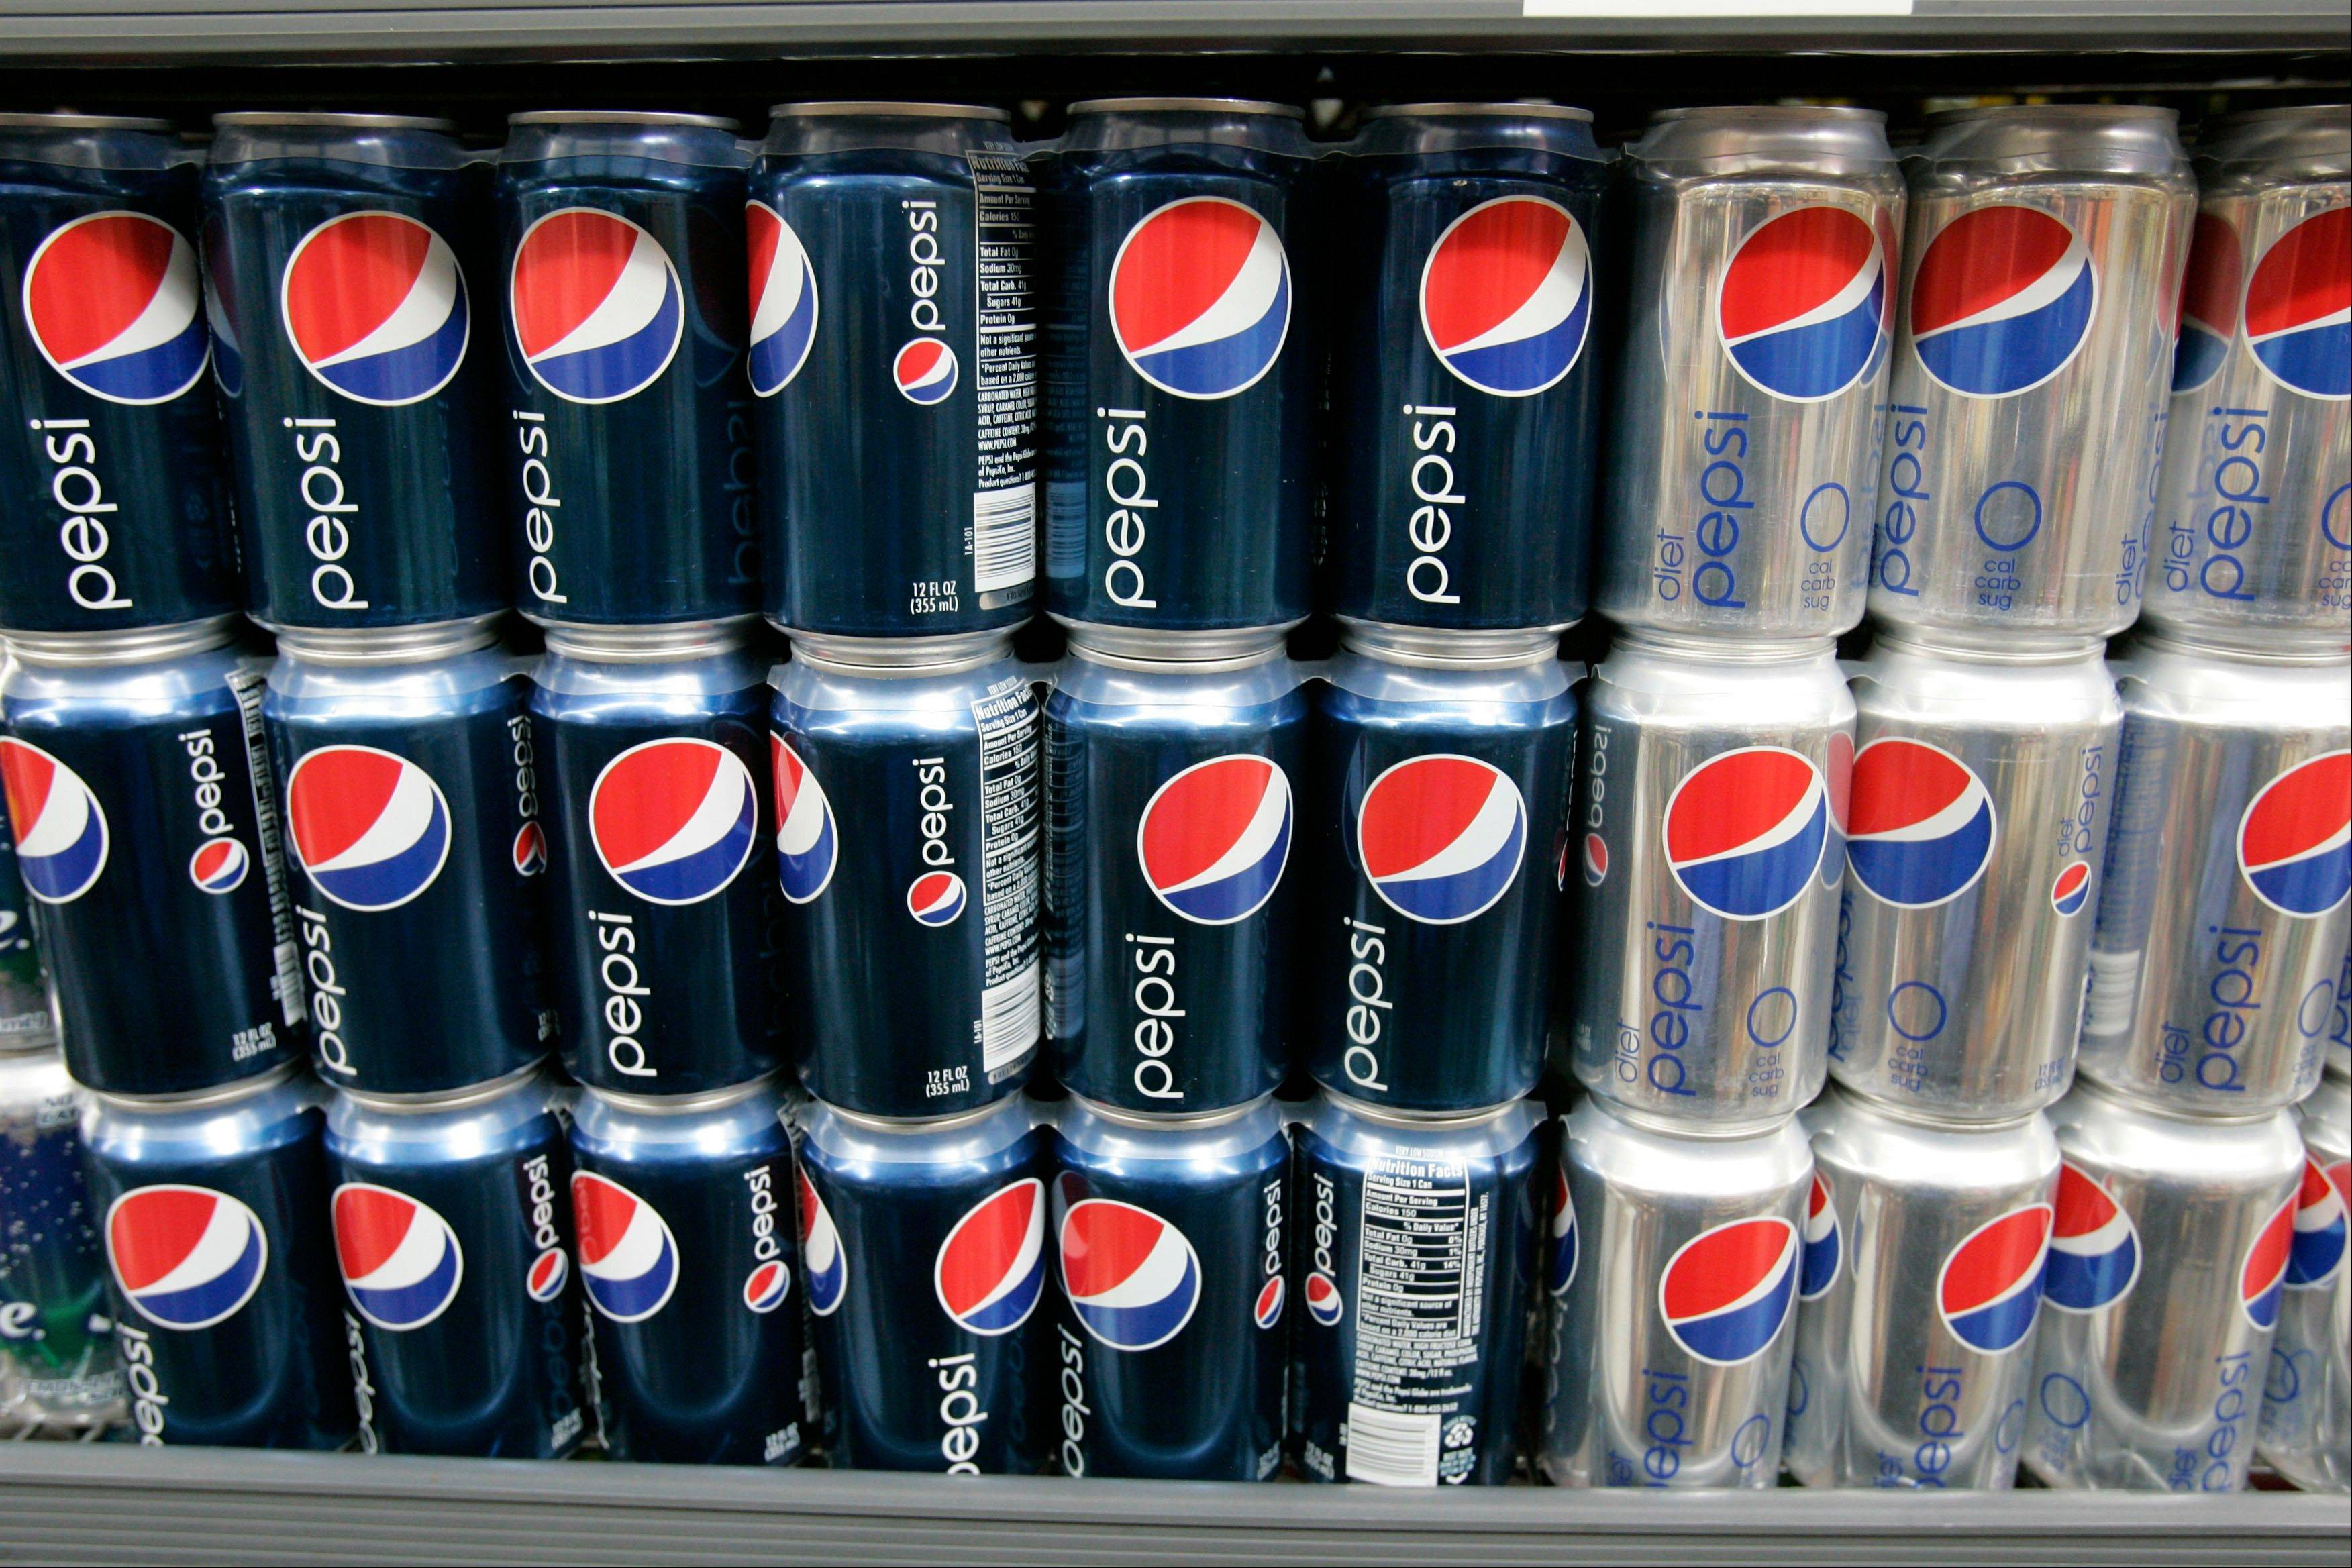 An environmental group said Wednesday that the caramel coloring used in Pepsi still contains a worrisome level of a carcinogen, even after the drink maker said it would change its formula.